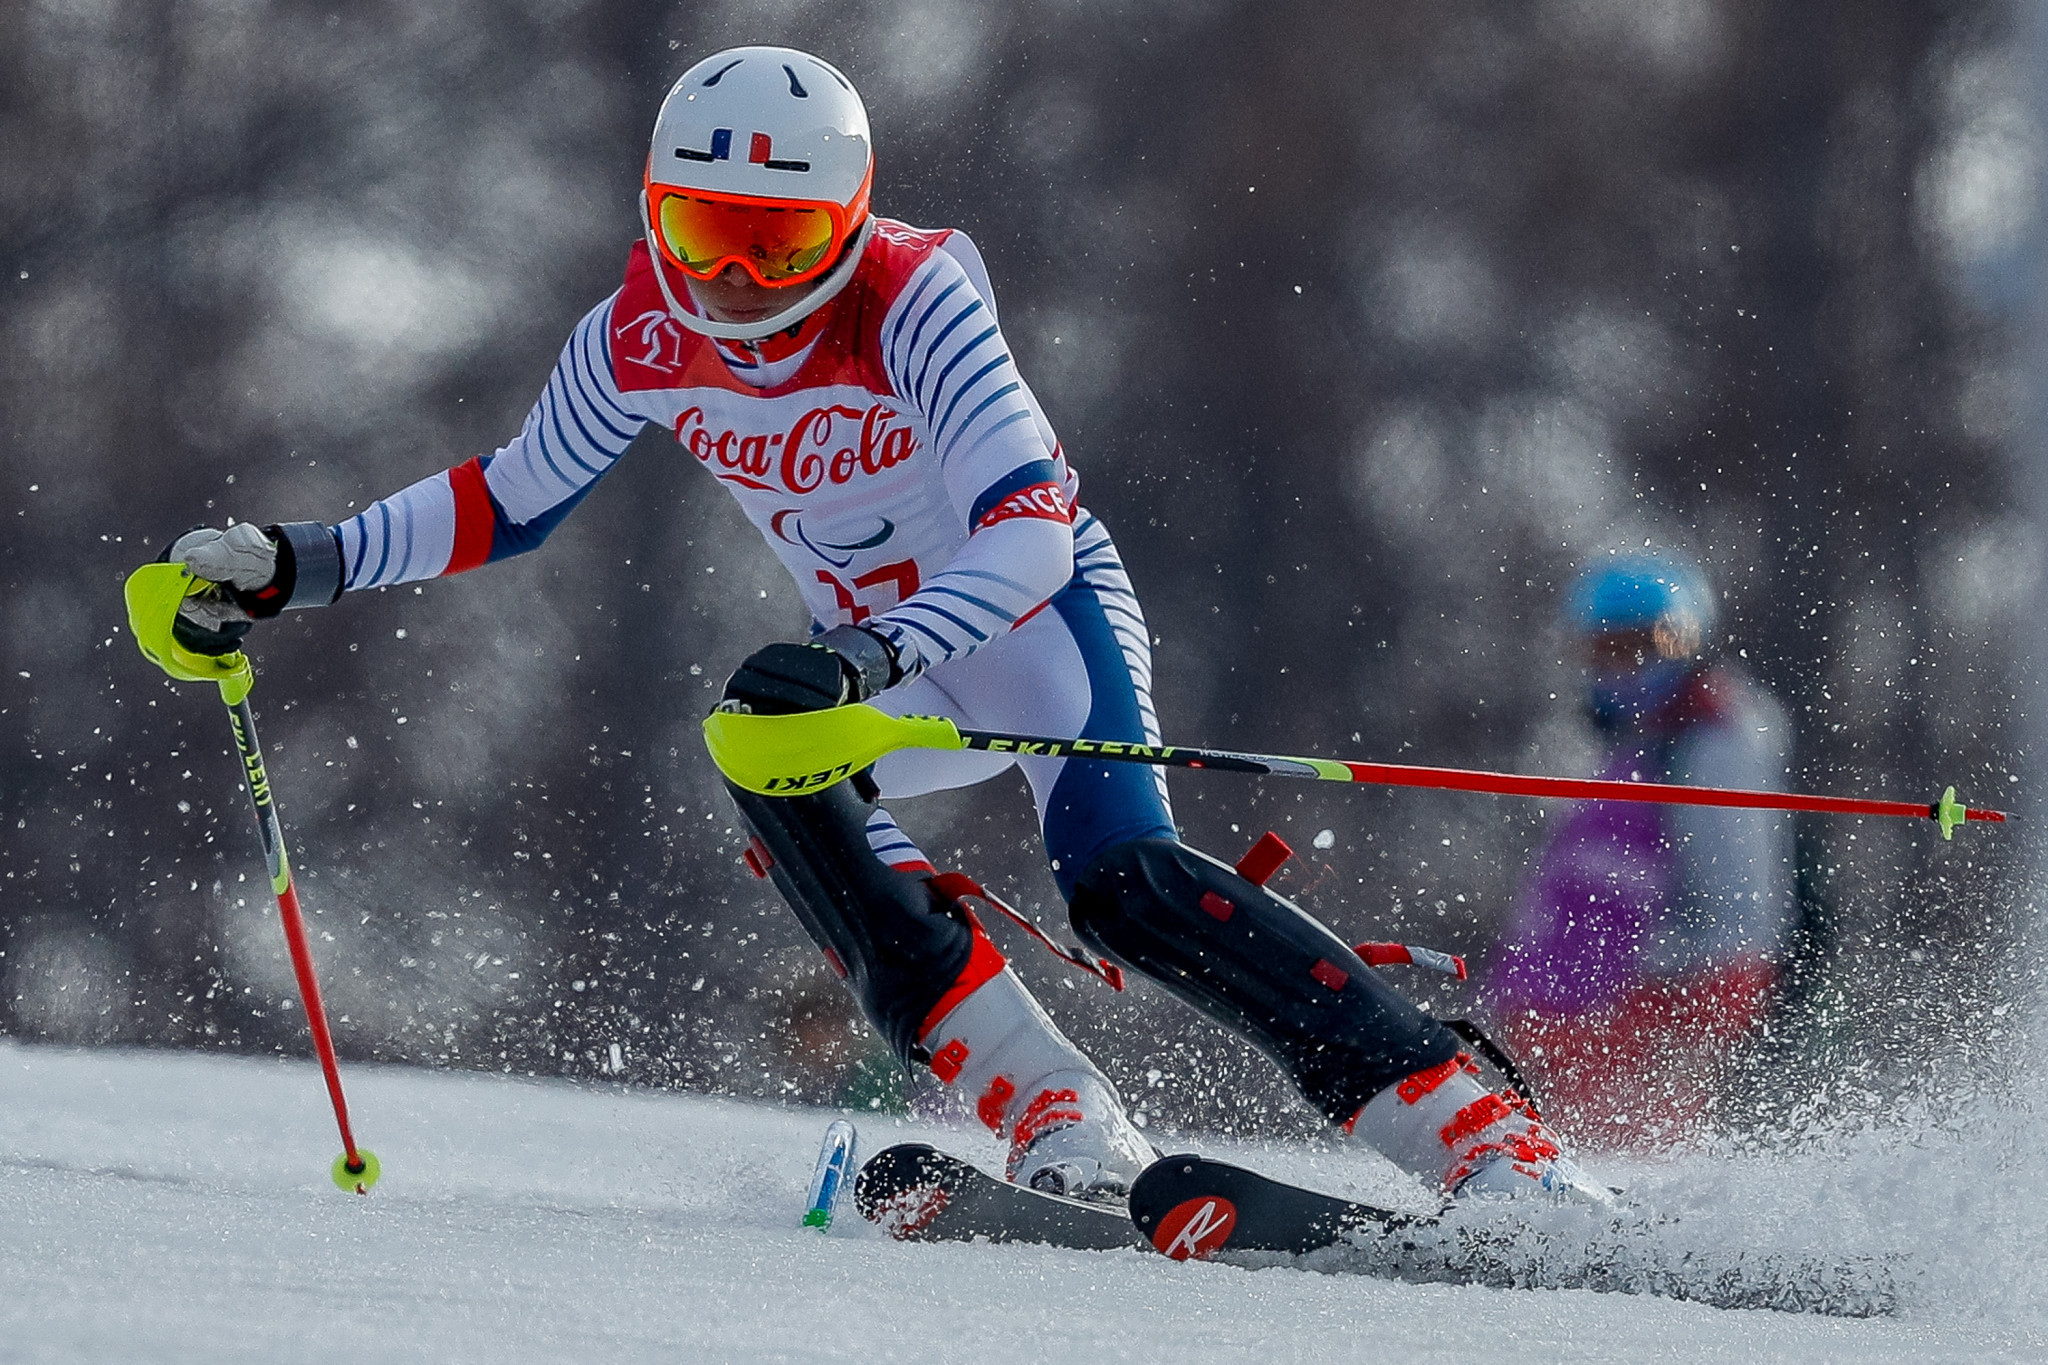 Bauchet off to winning start at World Para Alpine Skiing World Cup in La Molina